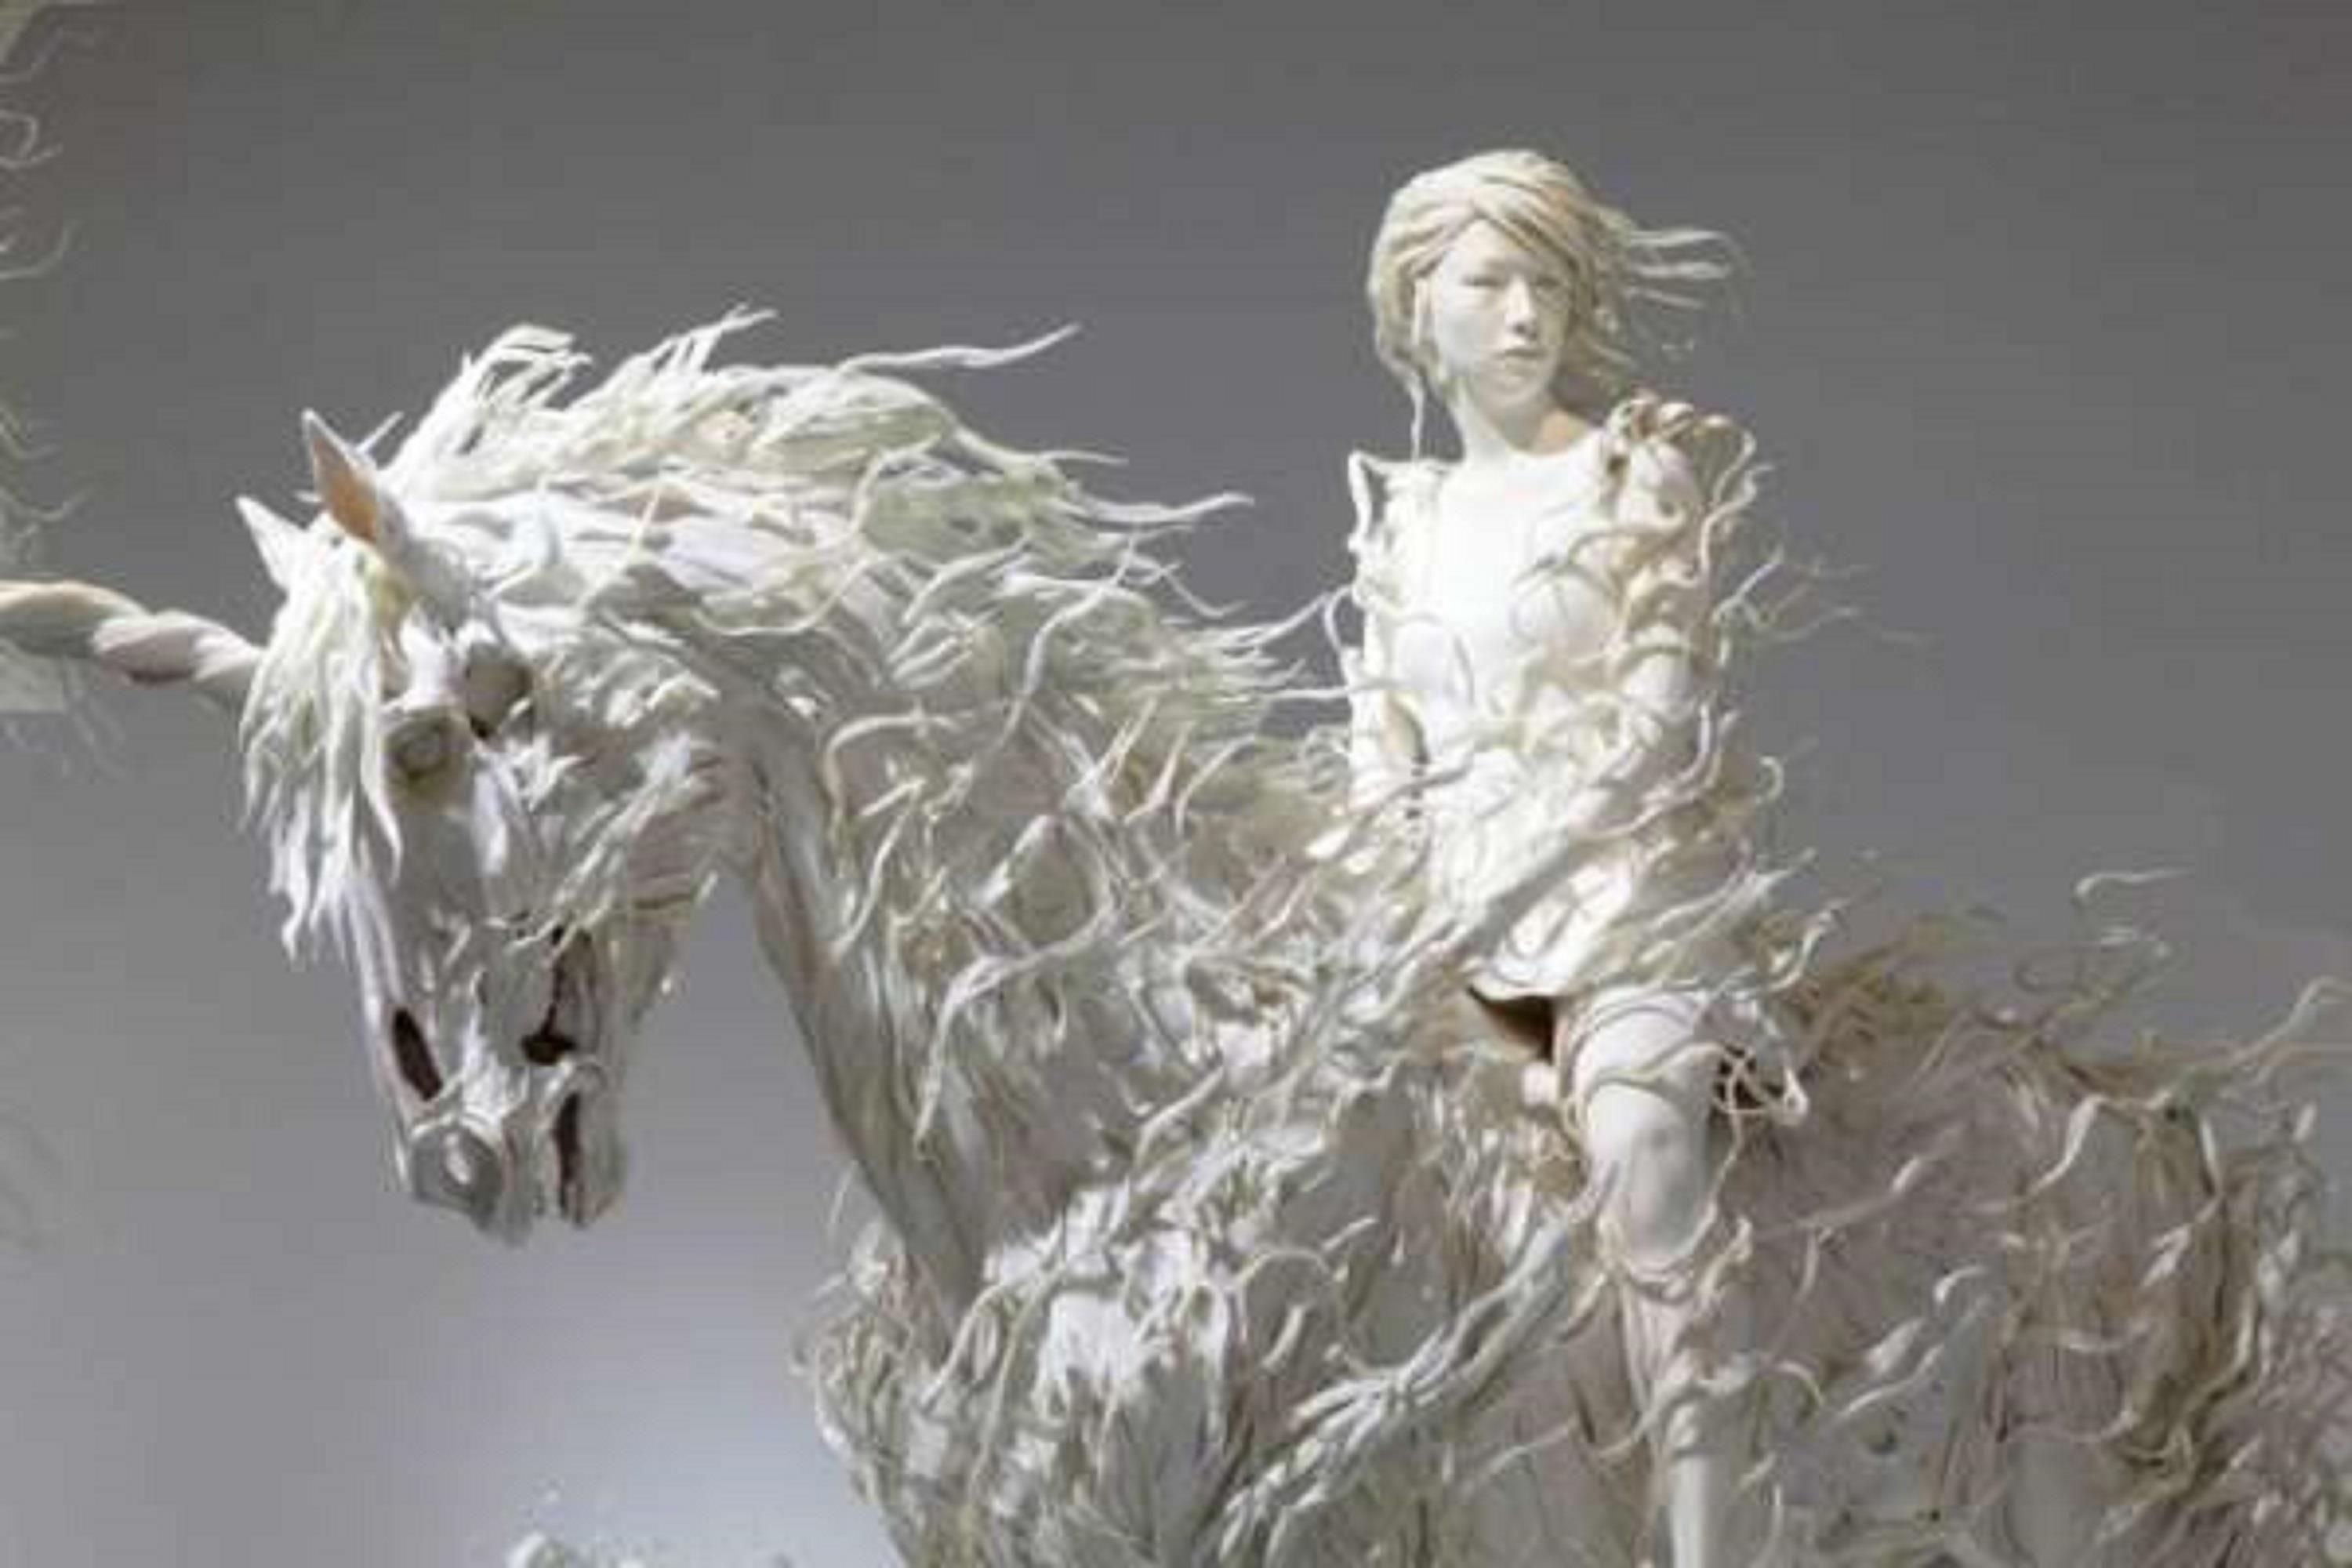 Odani Motohiko - Lady with a Silver Horse But it looks like a unicorn to me. And…